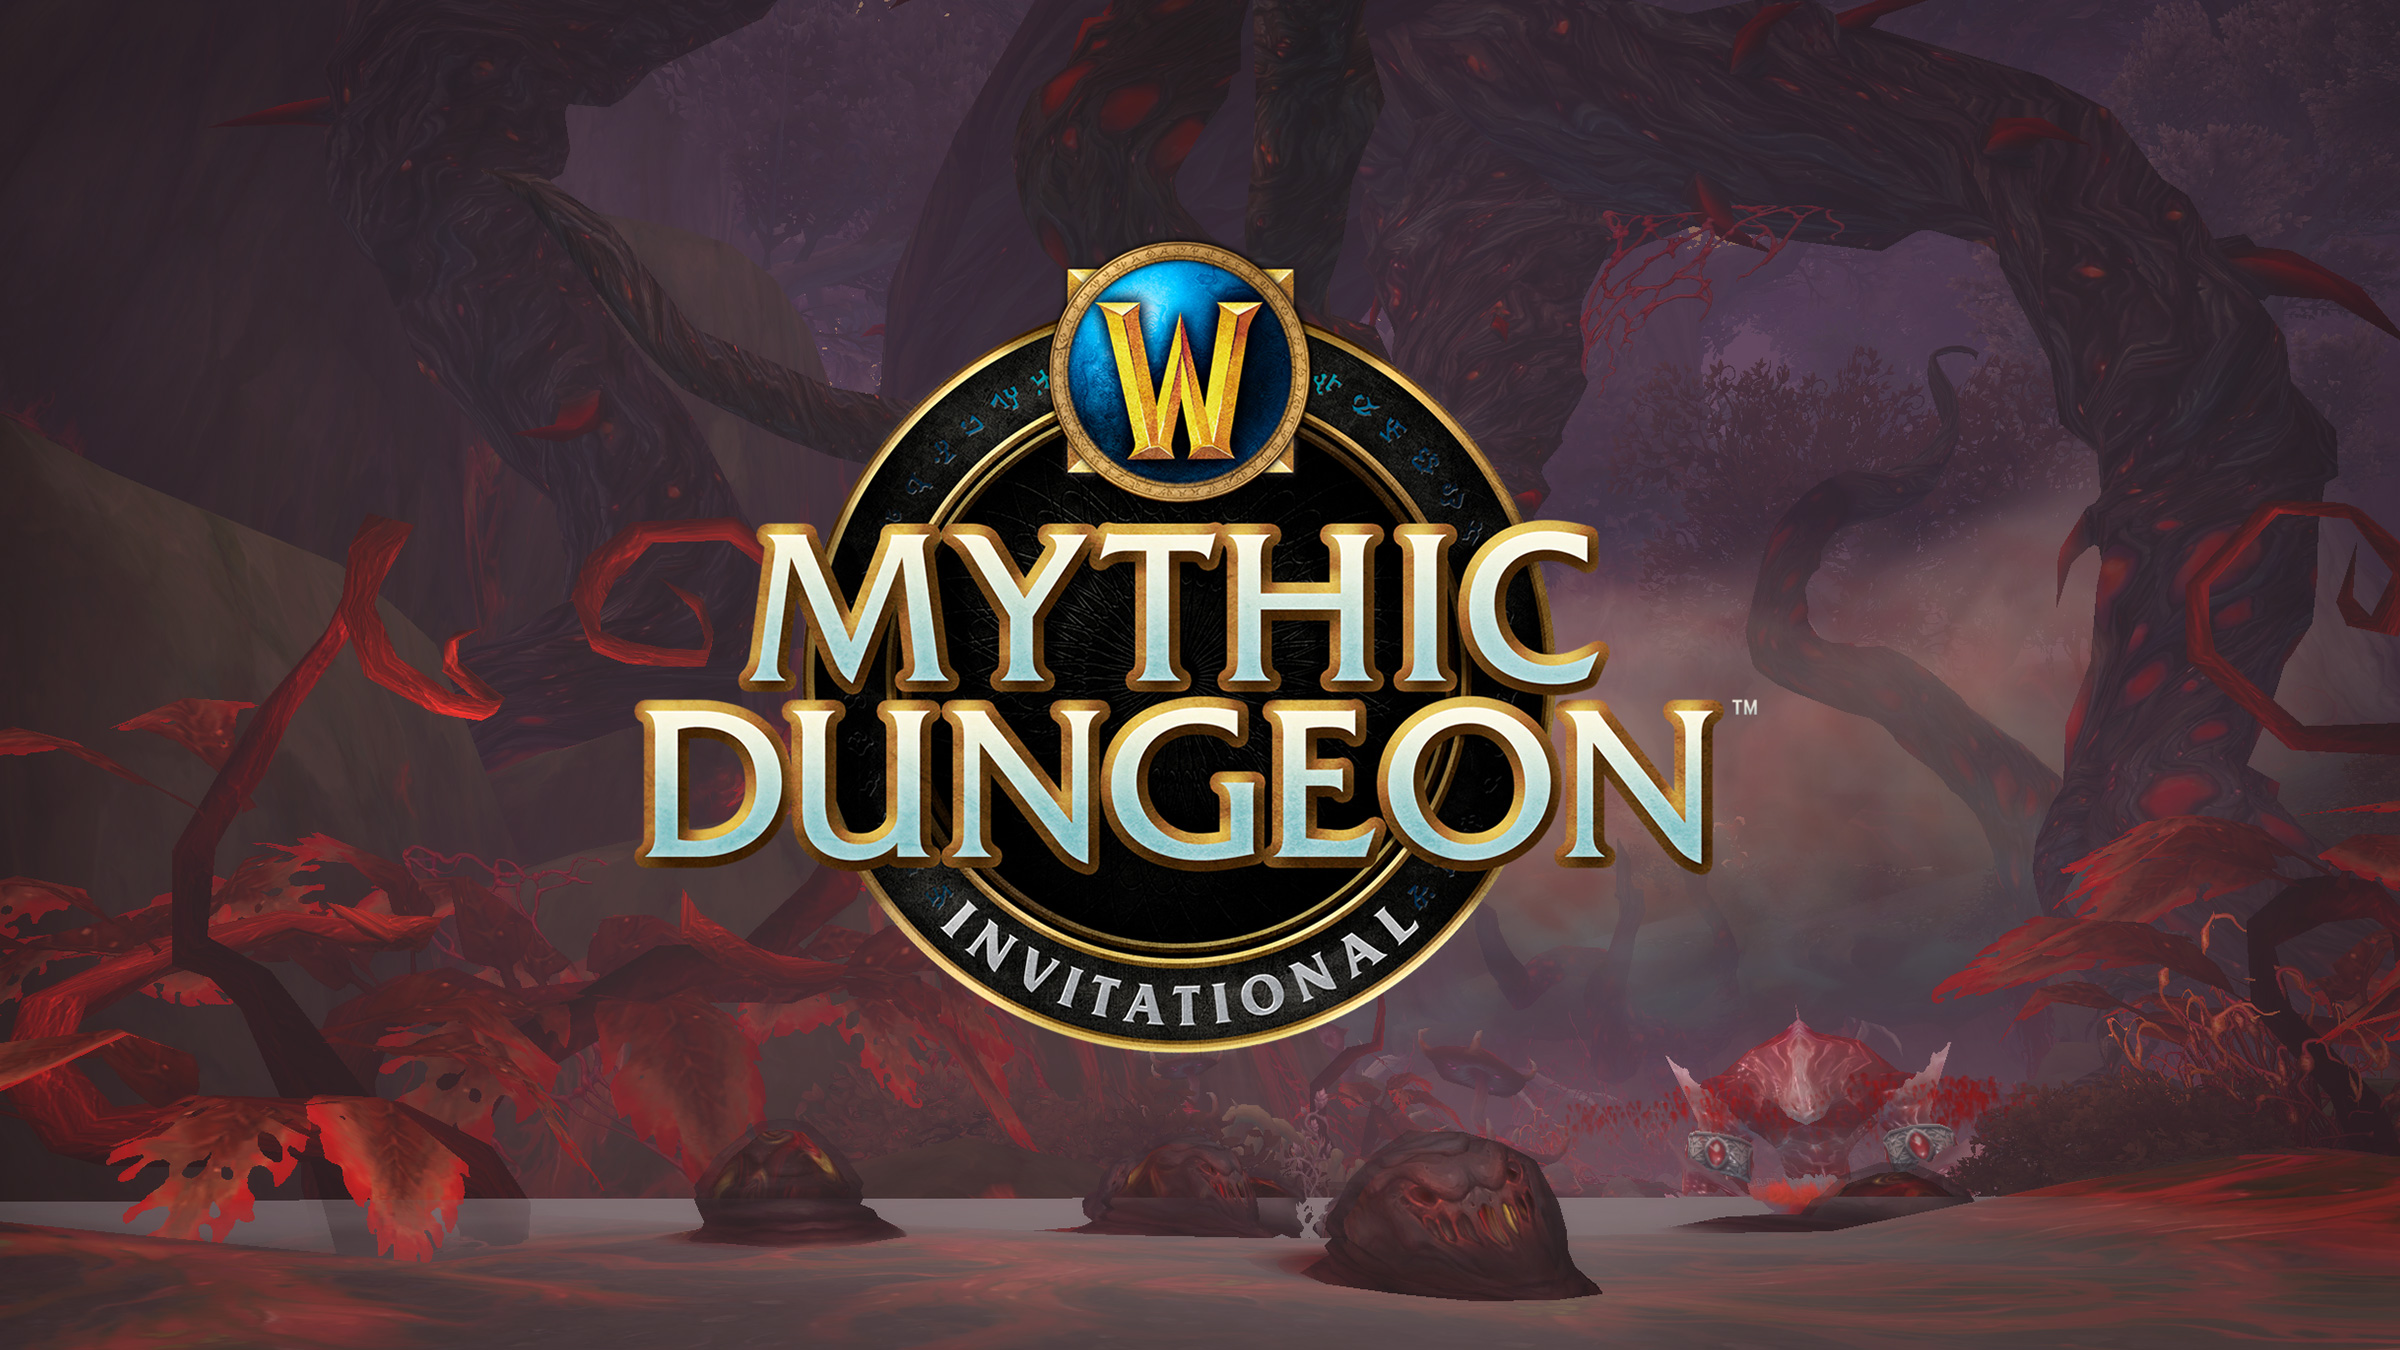 Mythic Dungeon Invitational: Prepping for the Time Trials